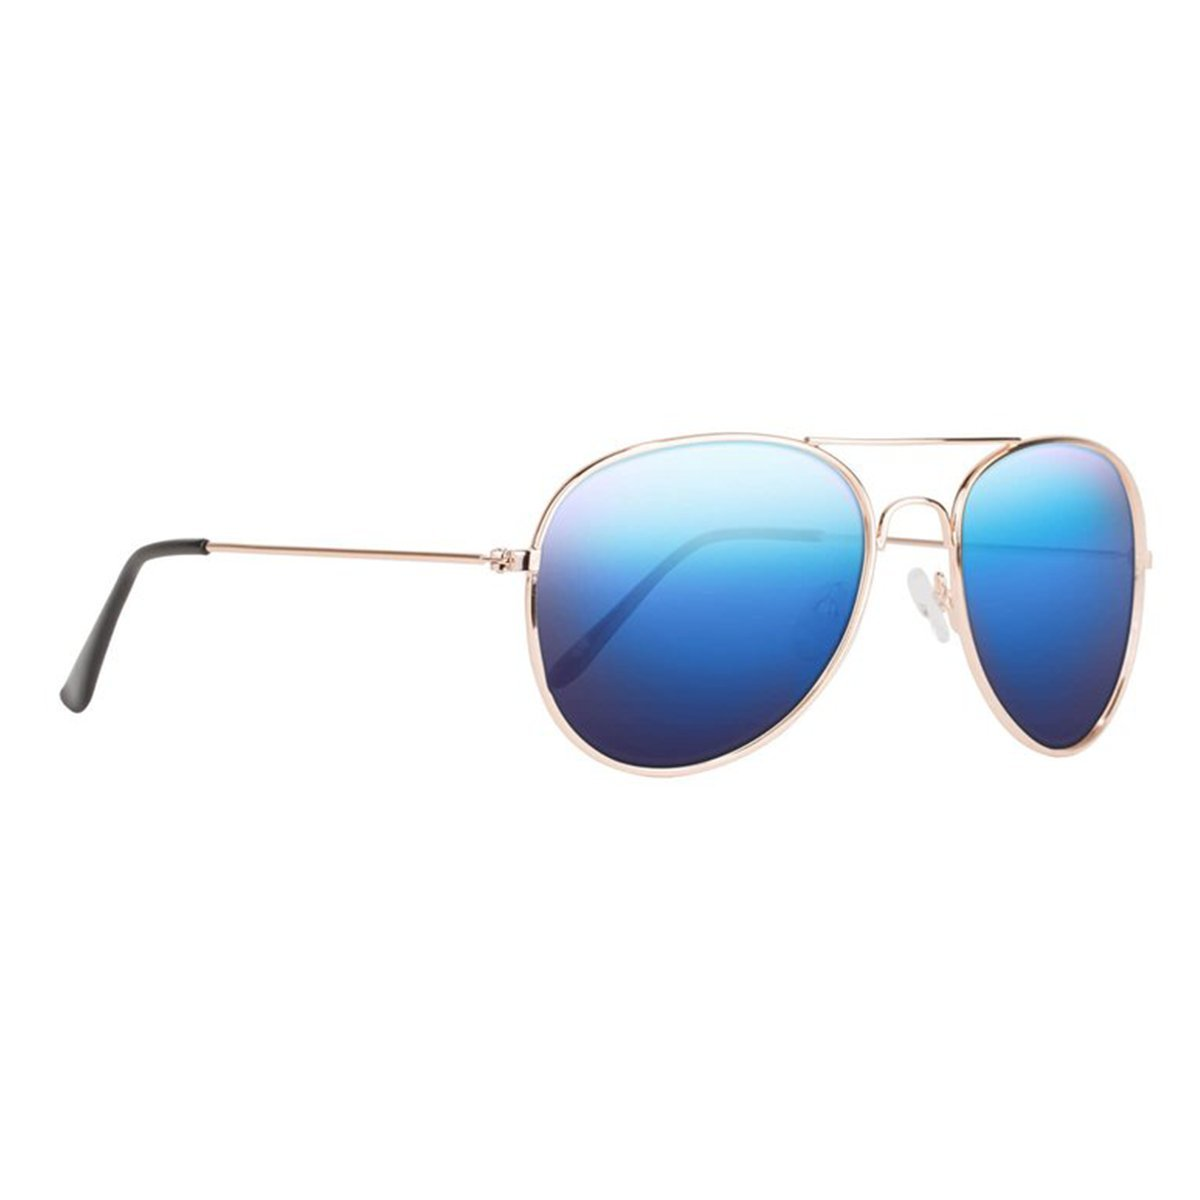 aeb21dcea5 Amazon.com  Classic Gold Metal Aviator Sunglasses with Blue Polarized  Lenses   UV Protection - the Apollo by Nectar  Sports   Outdoors